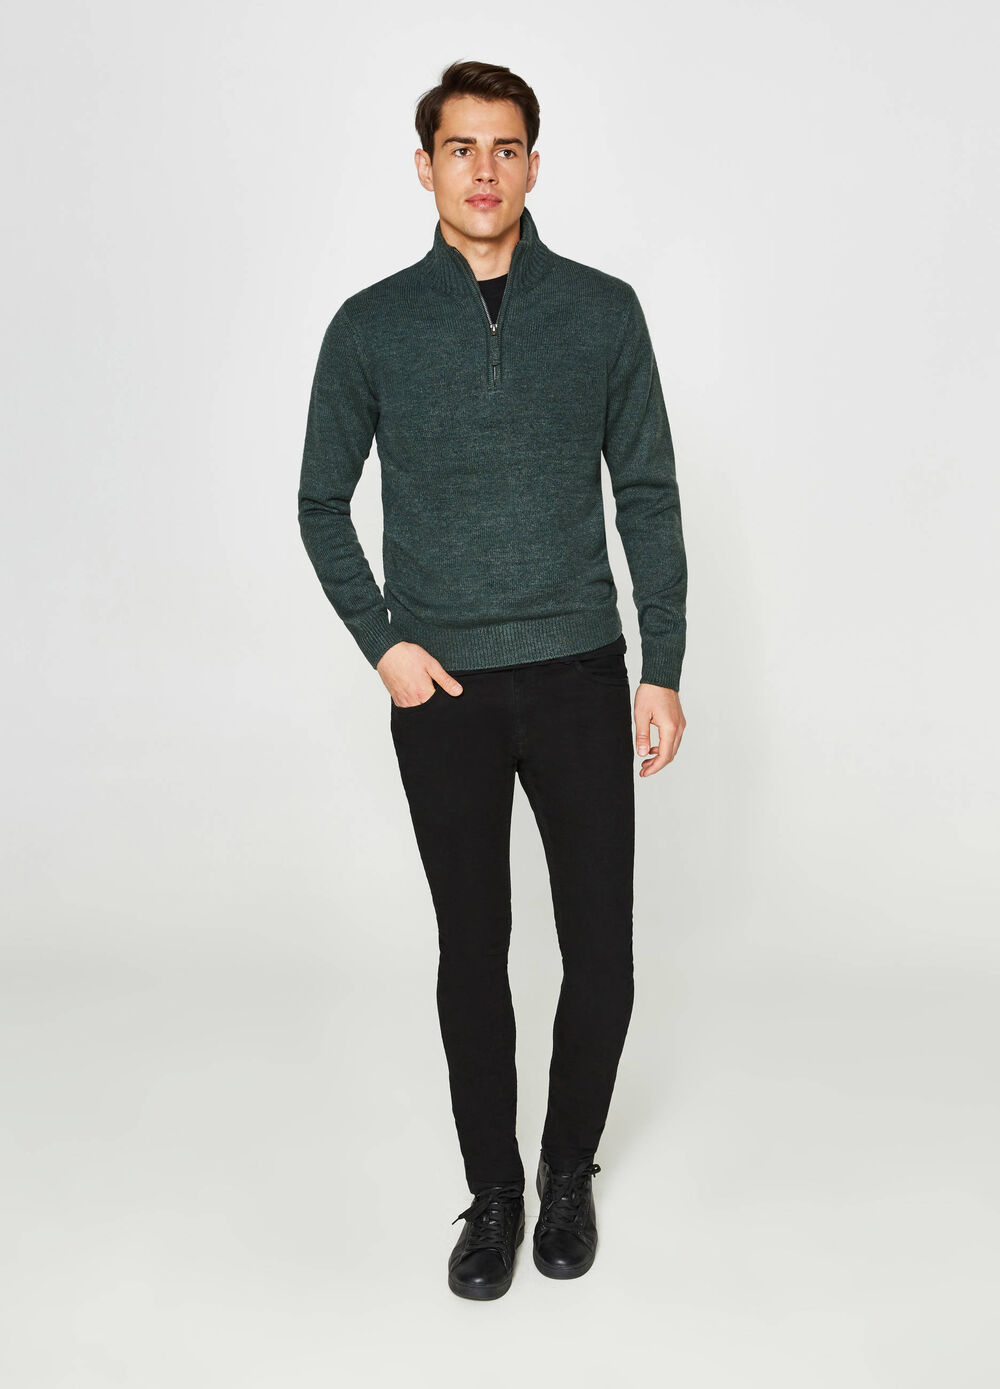 Pullover with high neck and zip